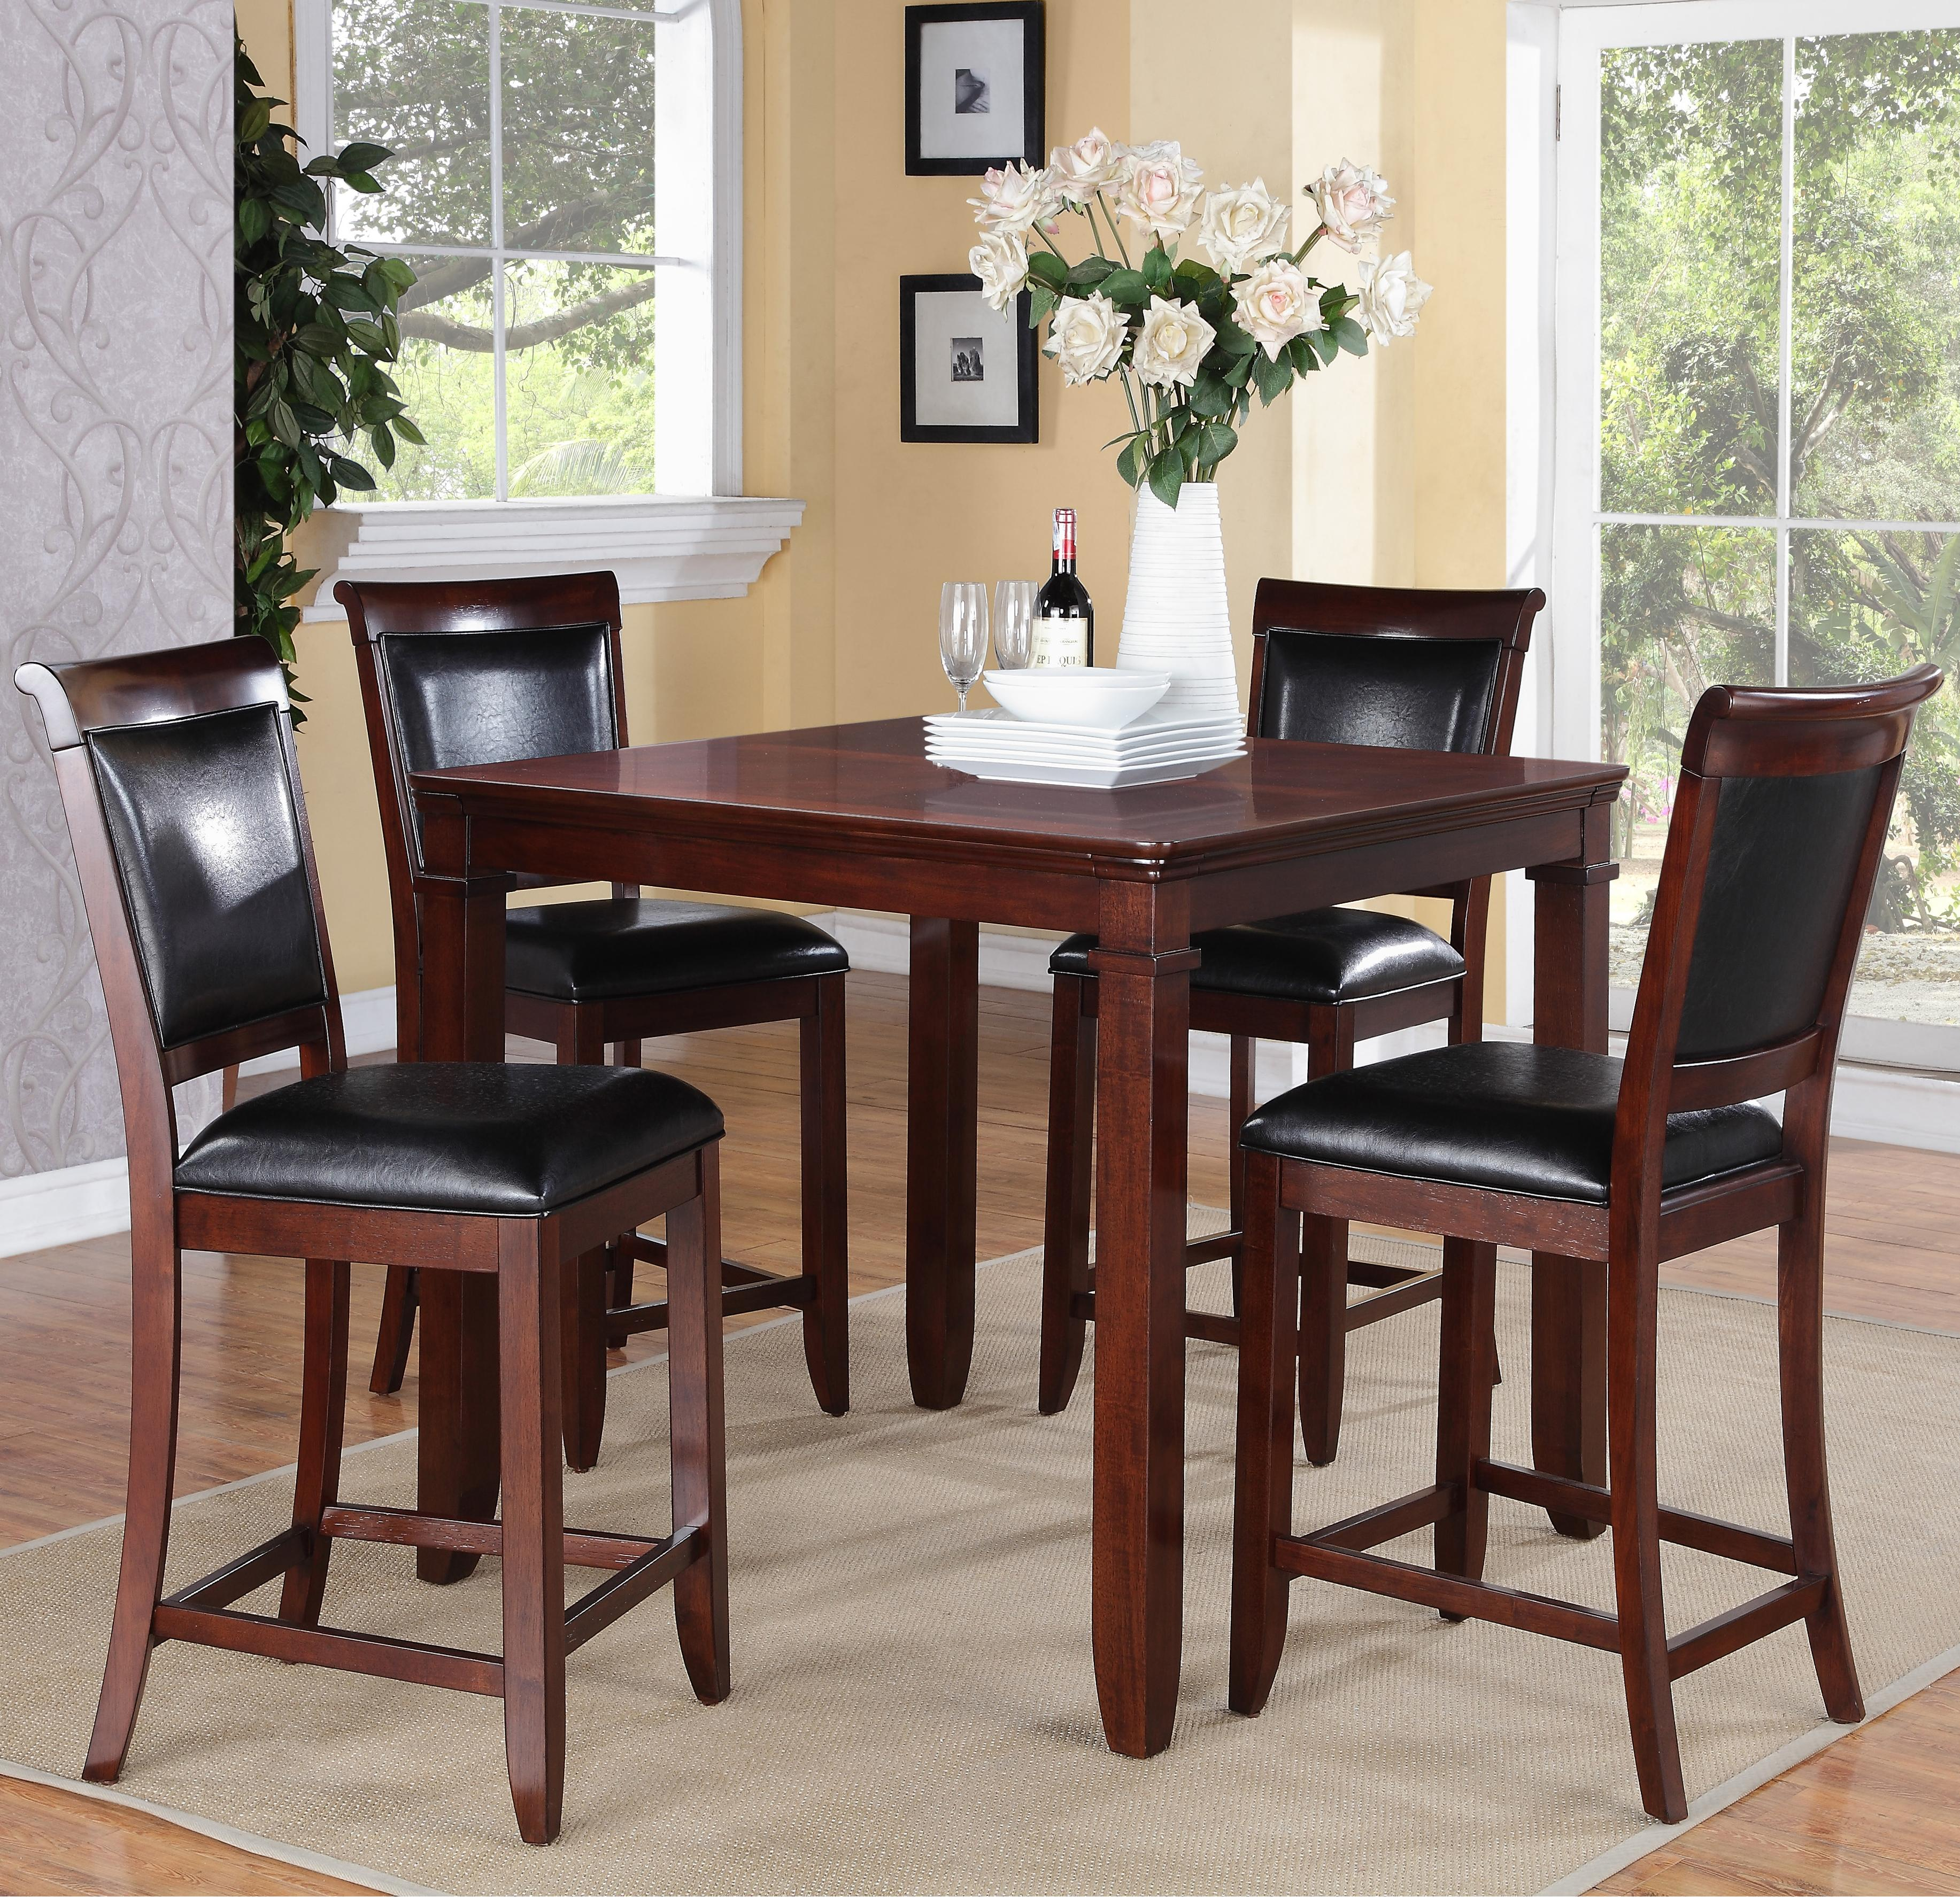 Standard Furniture Dallas  5 Piece Counter Height Table Set - Item Number: 12212